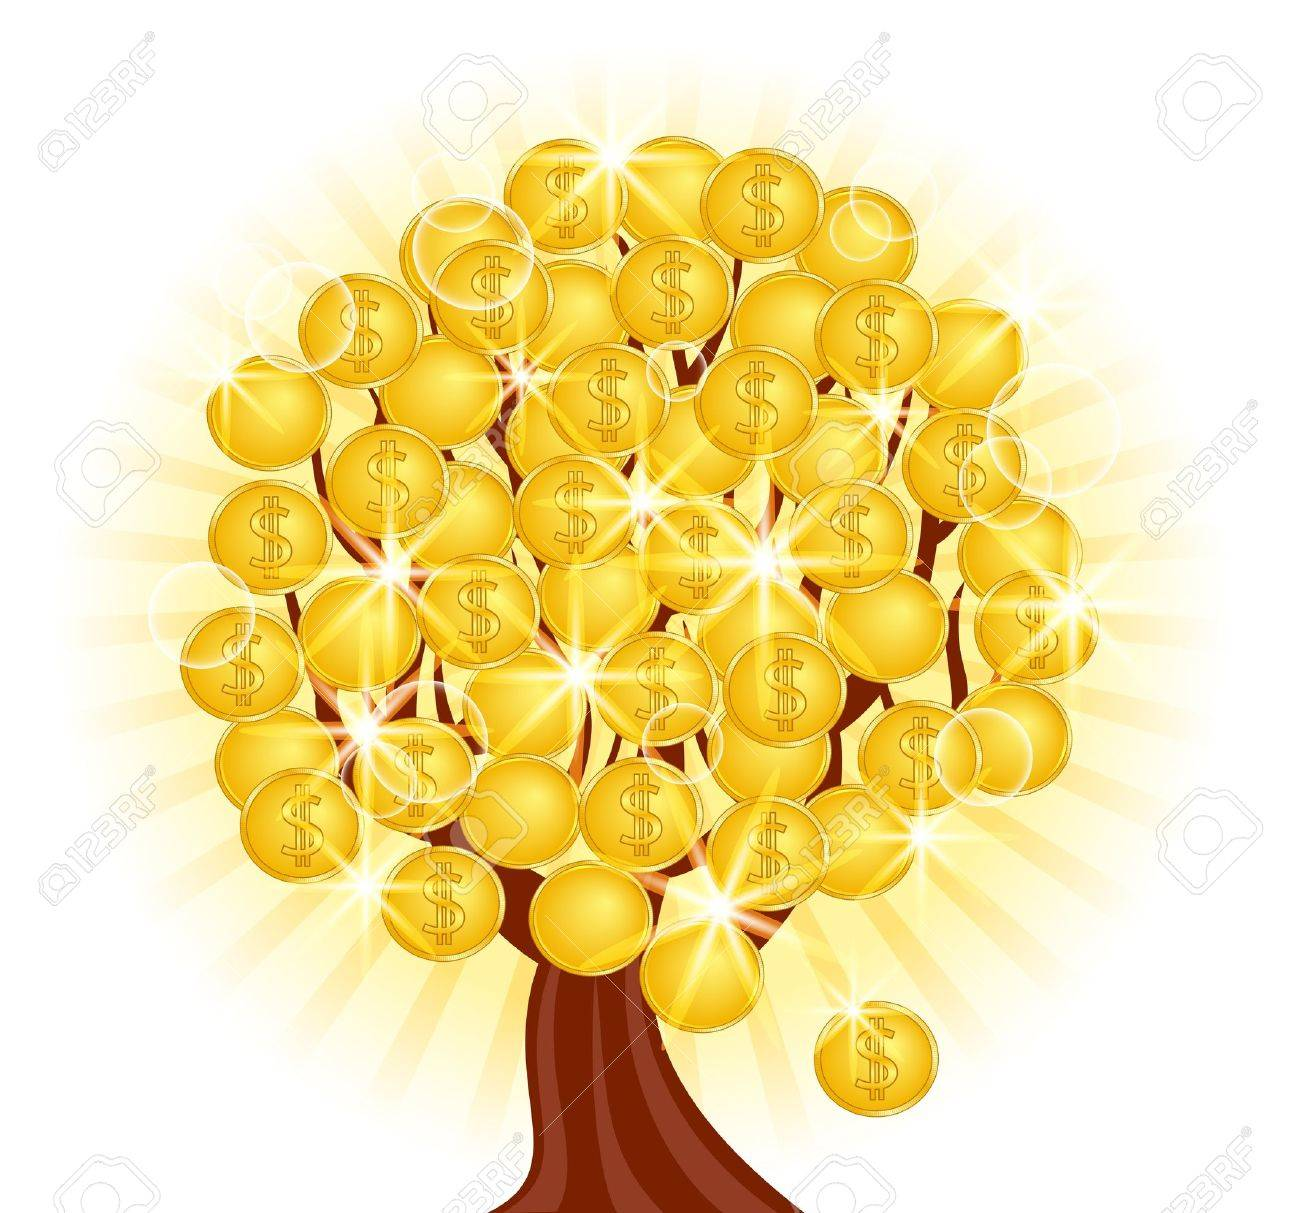 vector illustration of a money tree with coins on sunny background - 9531483